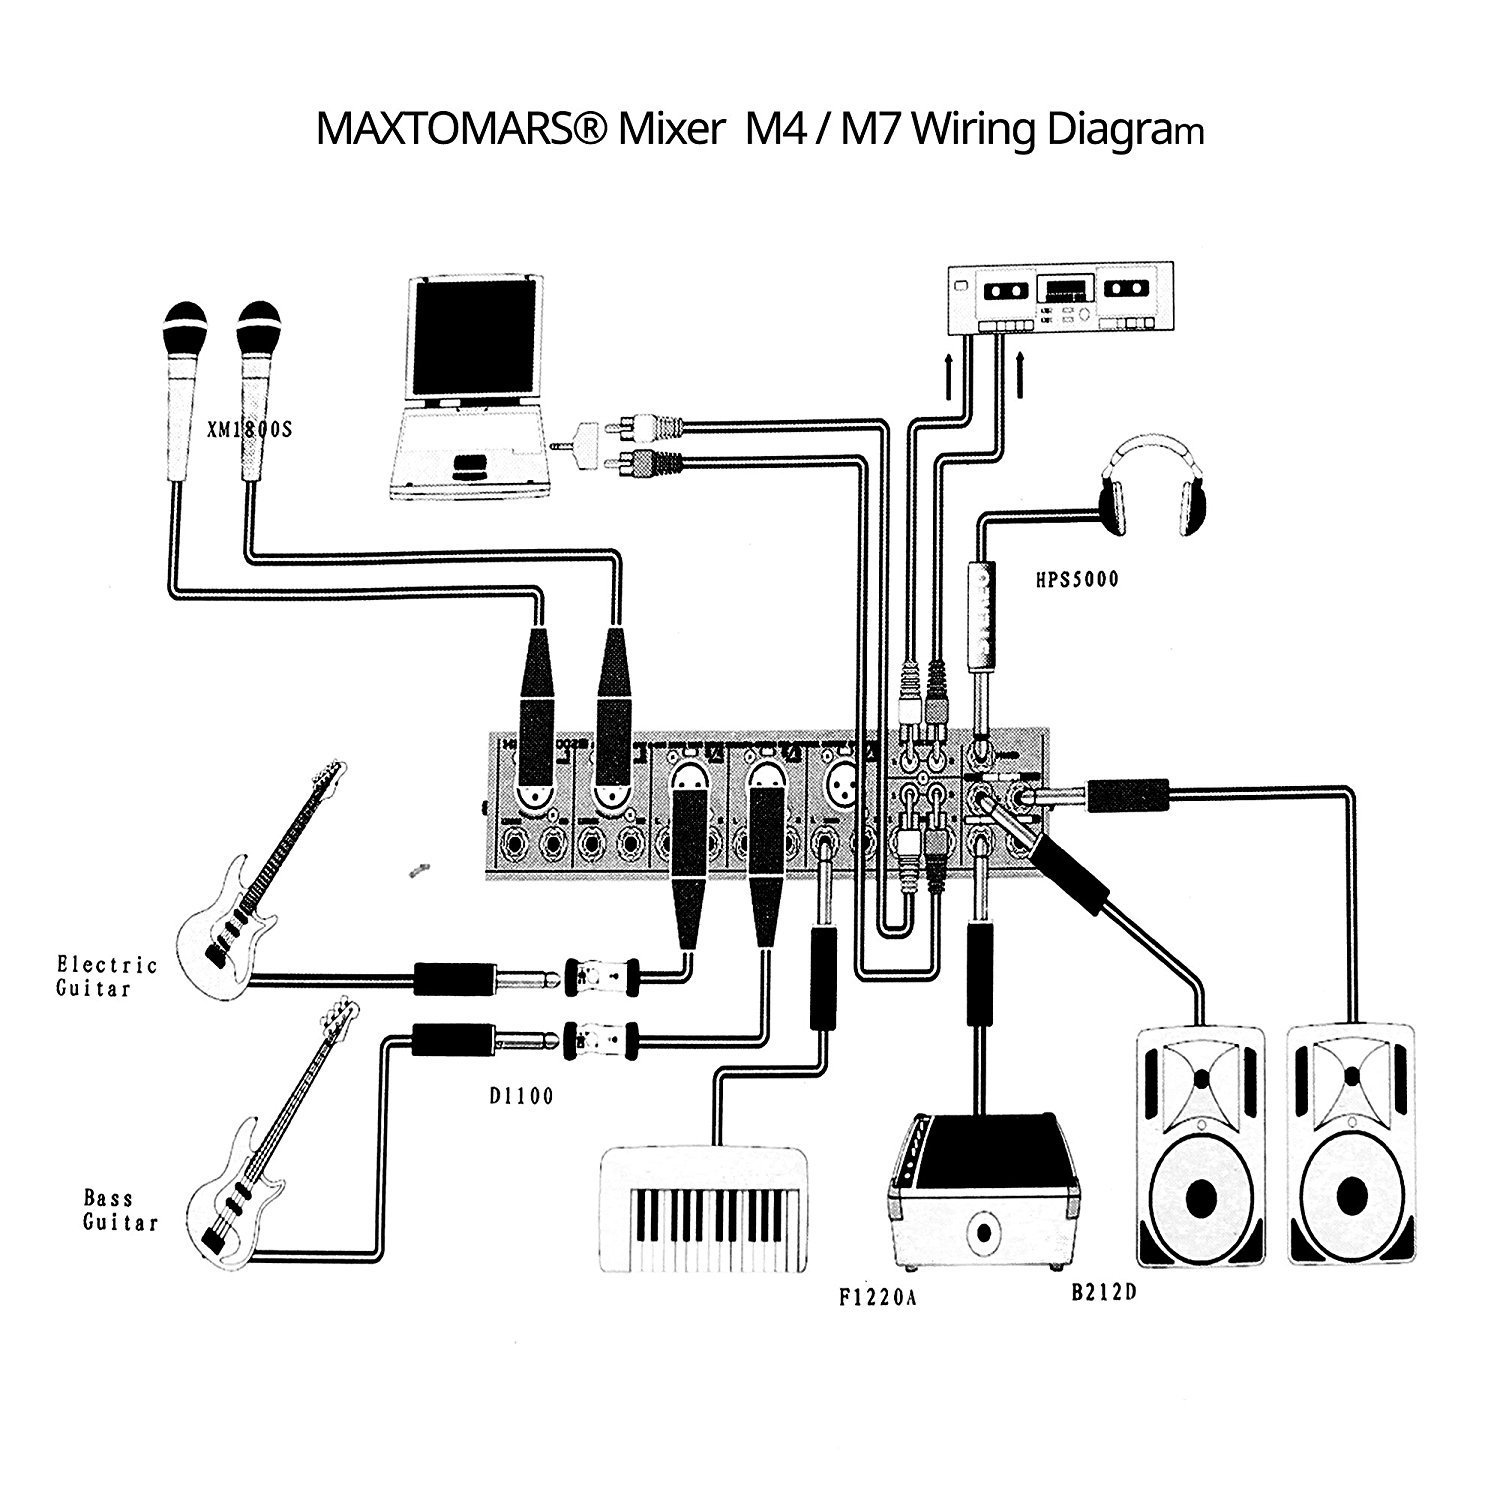 Professional 4 Channel Live Studio Audio Sound Usb Mp3 Mixer Mixing Guitar To Wiring Diagram Kindly Note The Interface Cannot Be Used As Data Transmission Between Computer It Supports Only Player U Disk That Means Play Music